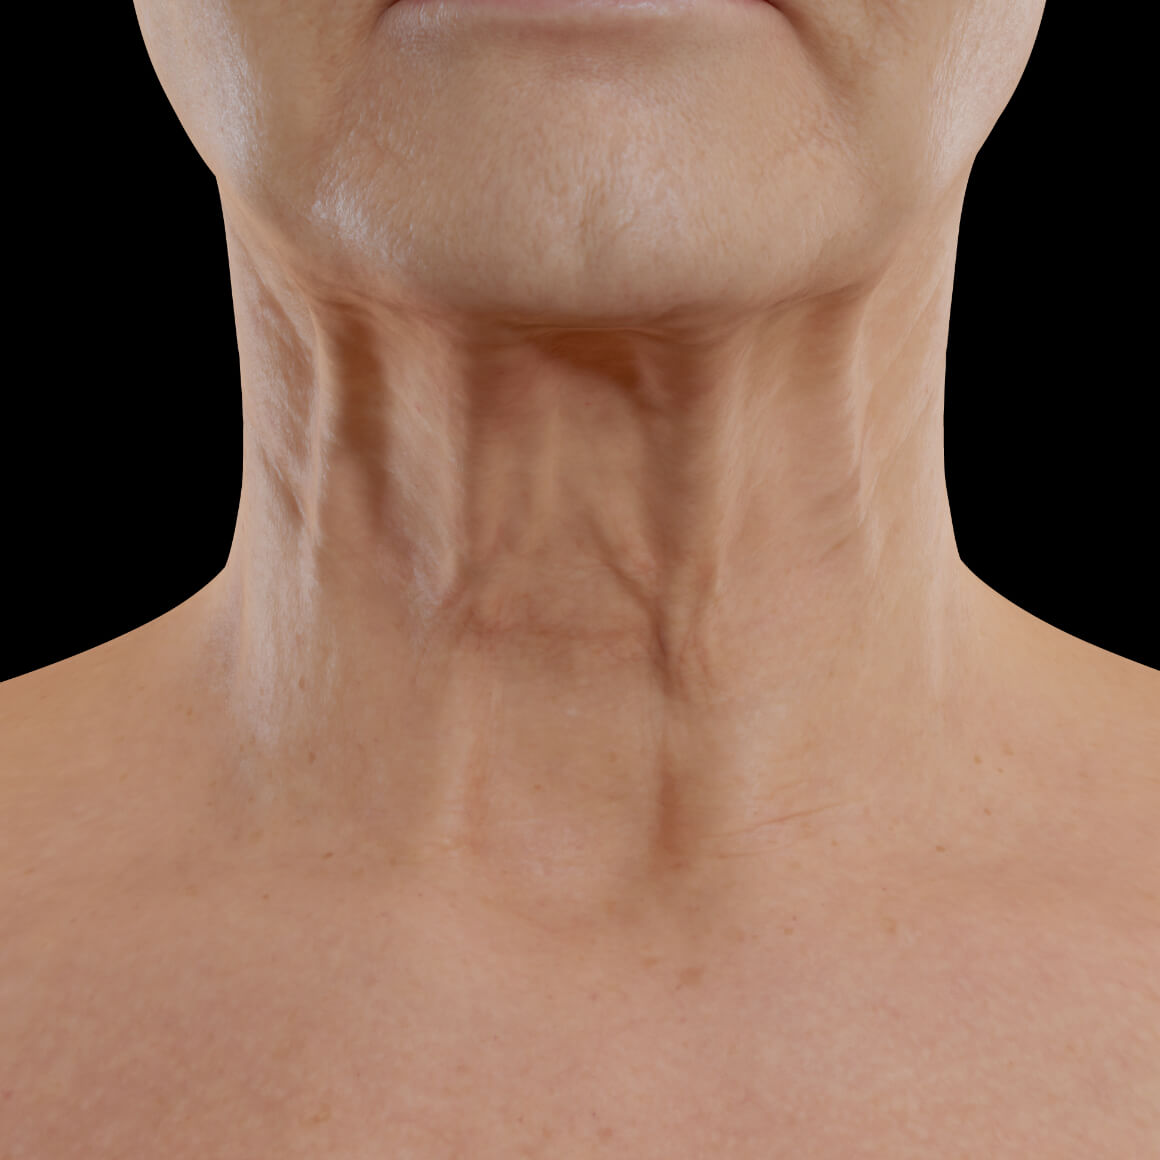 Female patient from Clinique Chloé facing front with wrinkles and noticeable platysmal cords in the neck area